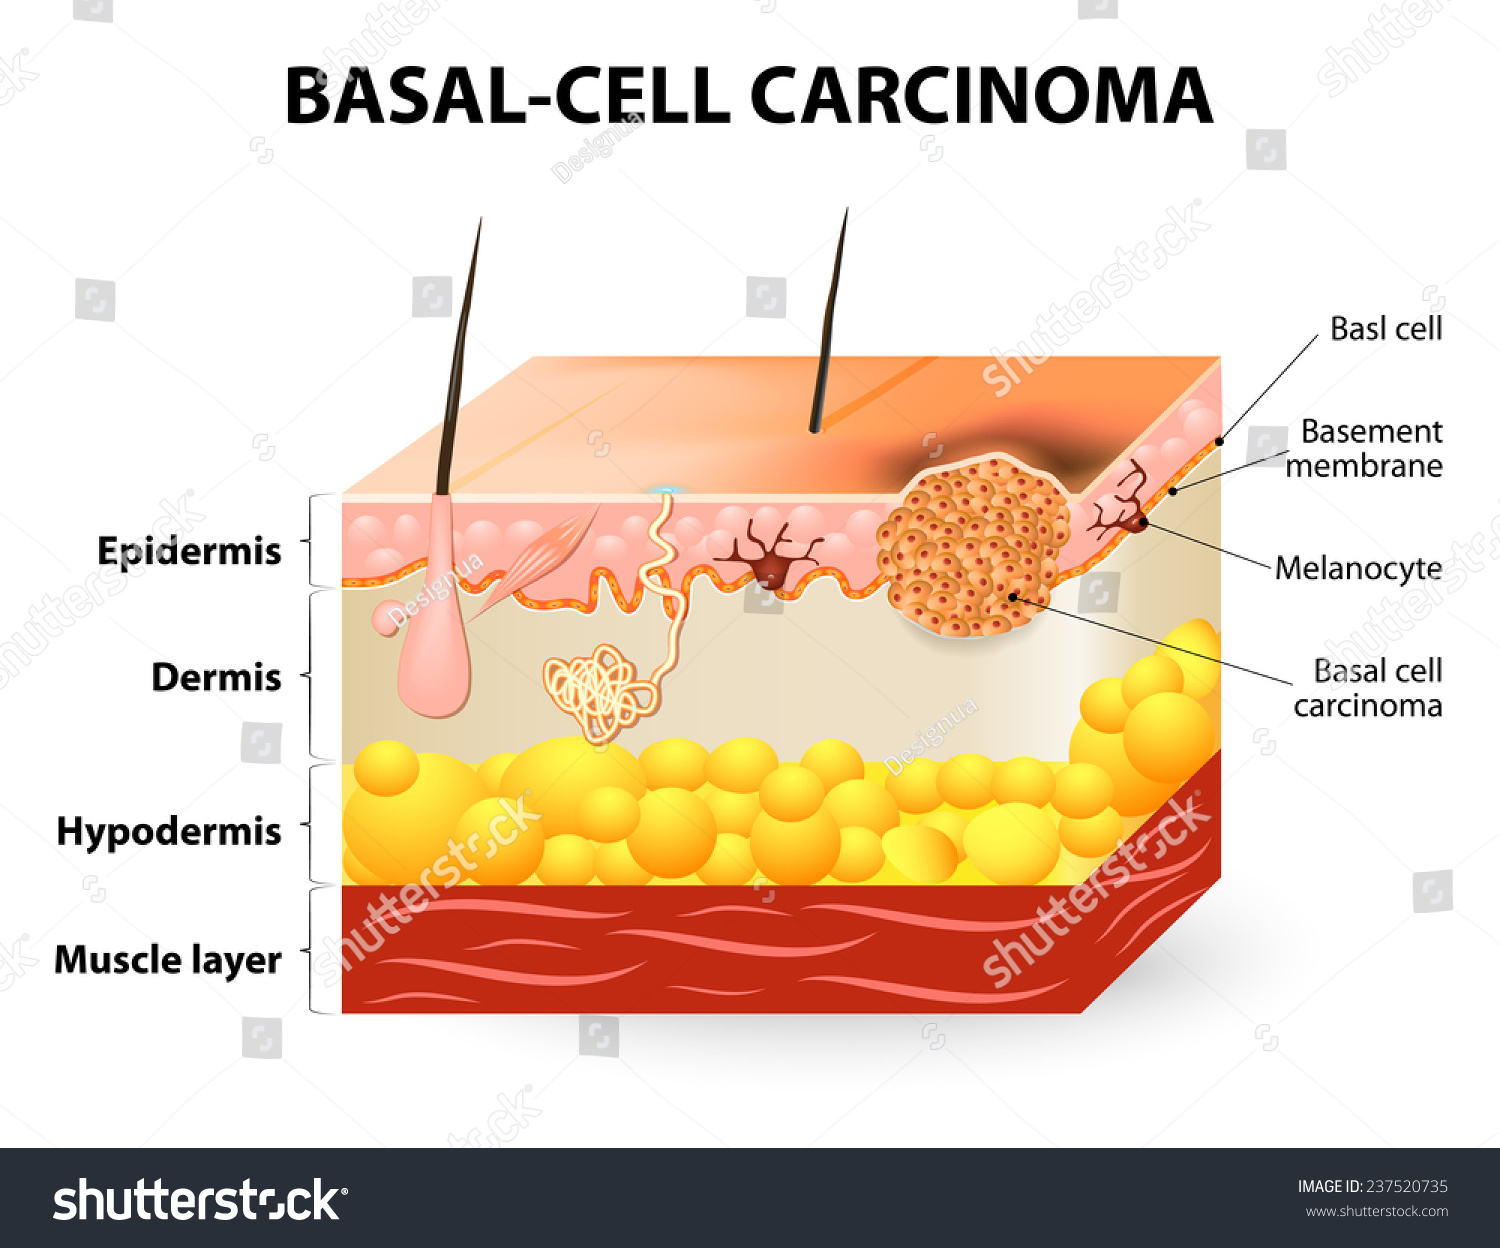 Skin Cancer Basal Cell Carcinoma Or Basal Cell Cancer